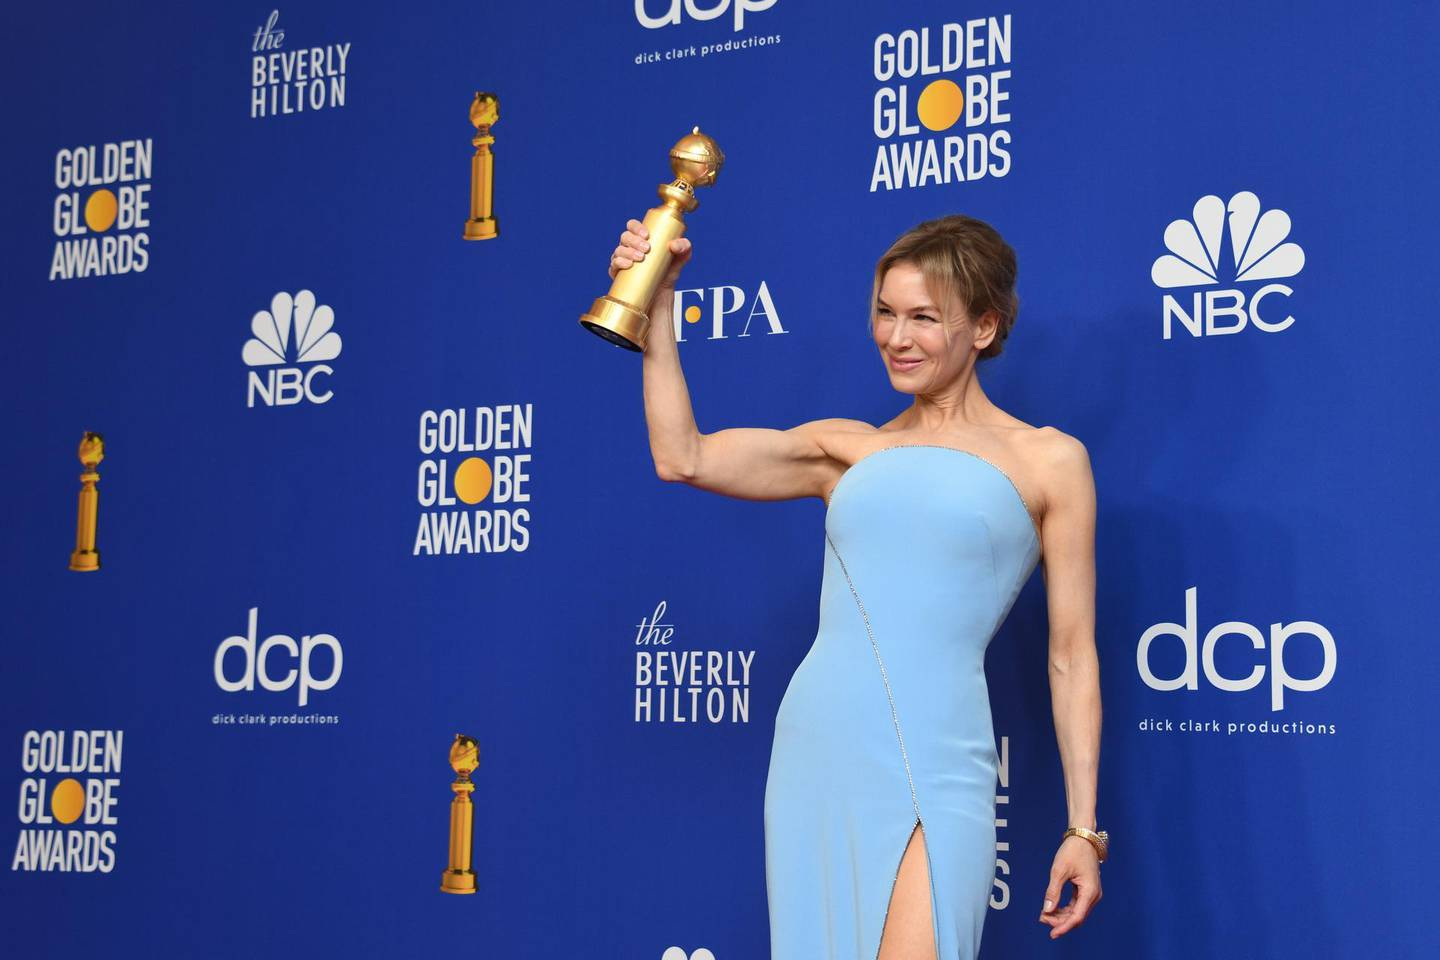 epa08106532 Renee Zellweger holds the award for Best Performance by an Actress in a Motion Picture - Drama for 'Judy' in the press room during the 77th annual Golden Globe Awards ceremony at the Beverly Hilton Hotel, in Beverly Hills, California, USA, 05 January 2020.  EPA/CHRISTIAN MONTERROSA